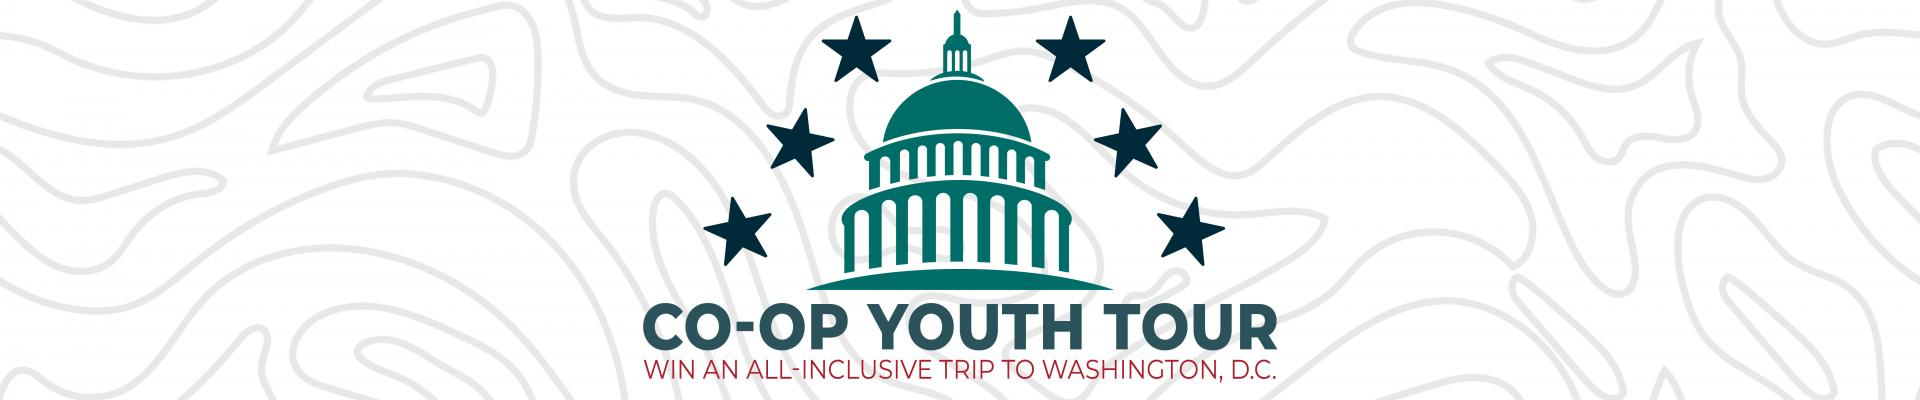 Co-op Youth Tour apply today.